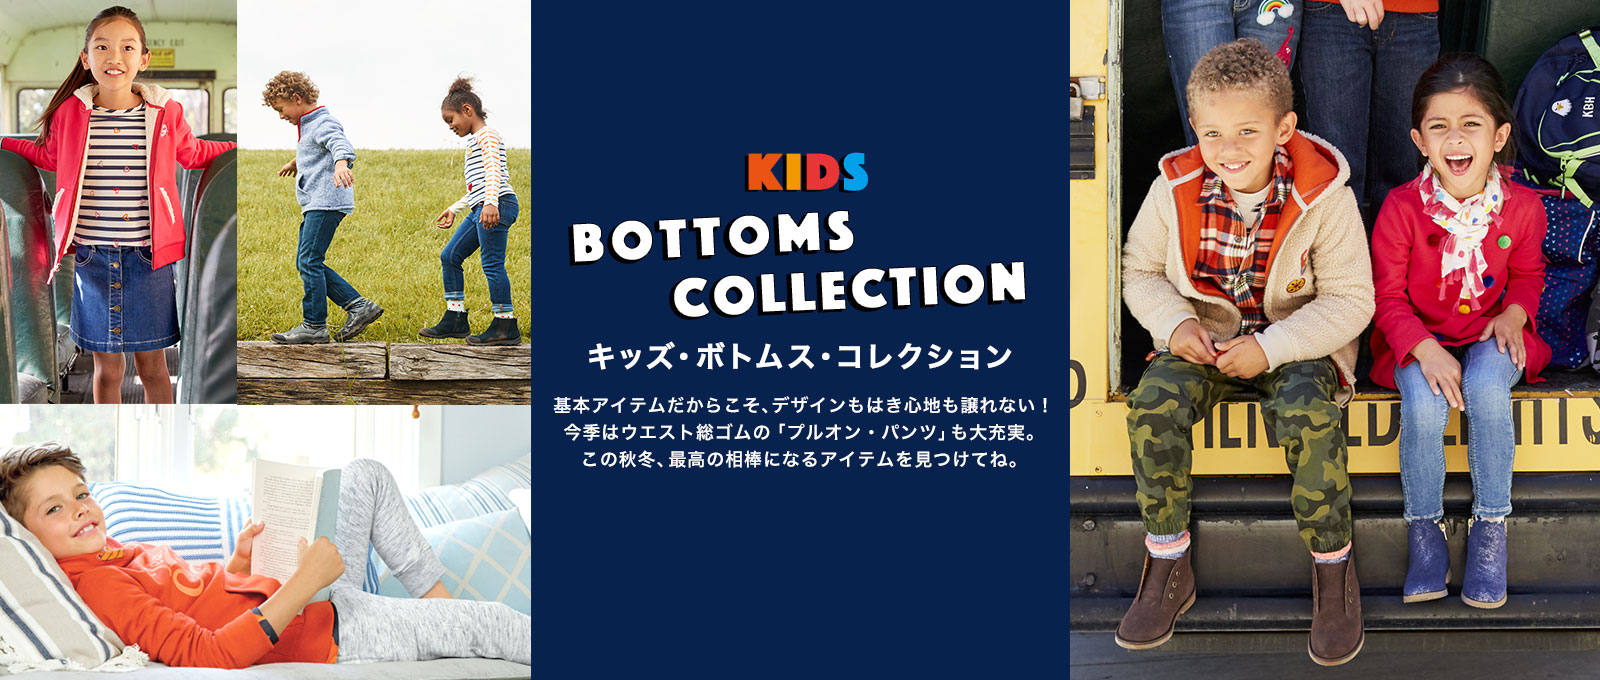 【KIDS BOTTOMS COLLECTION】キッズ・ボトムス・コレクション